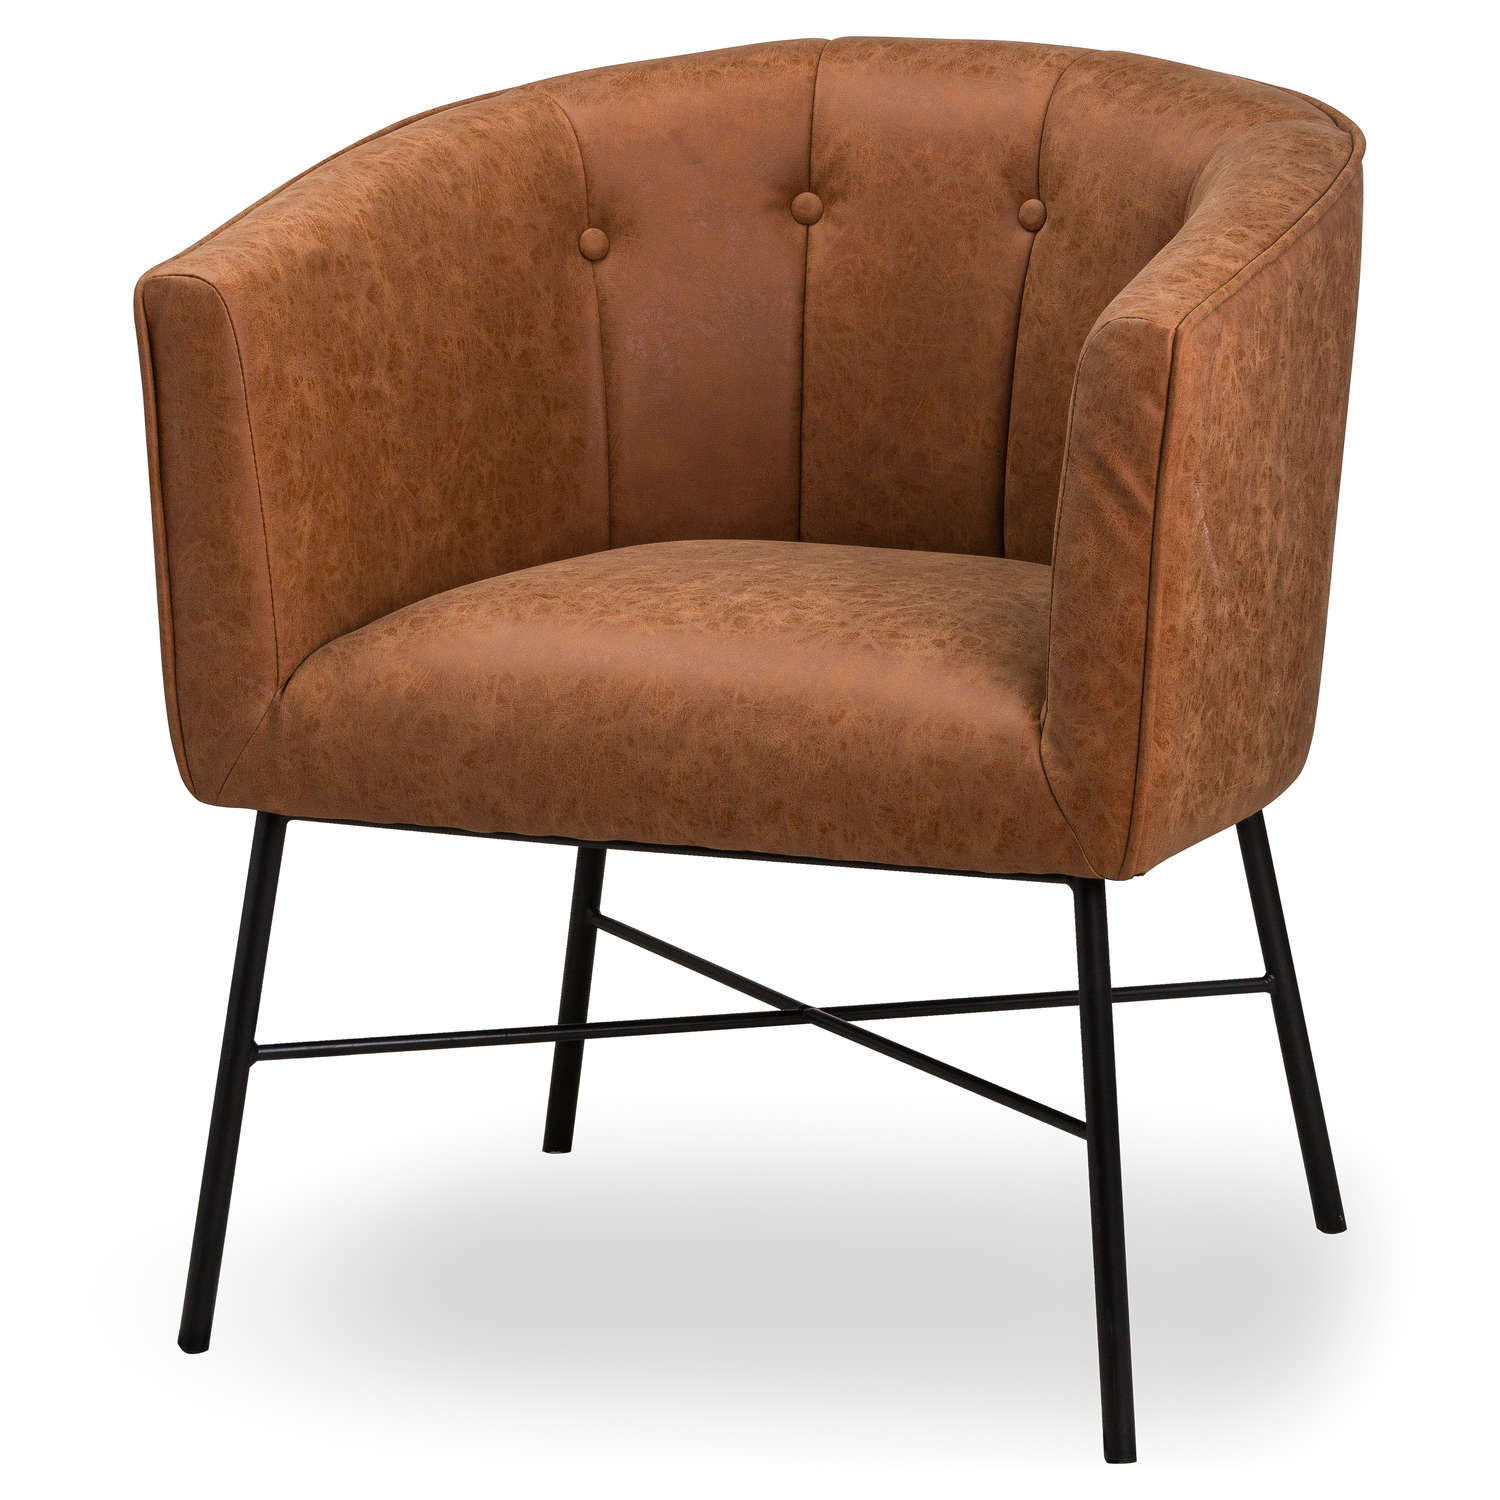 Tan Faux Leather Urban Tub Chair | Wholesale by Hill Interiors